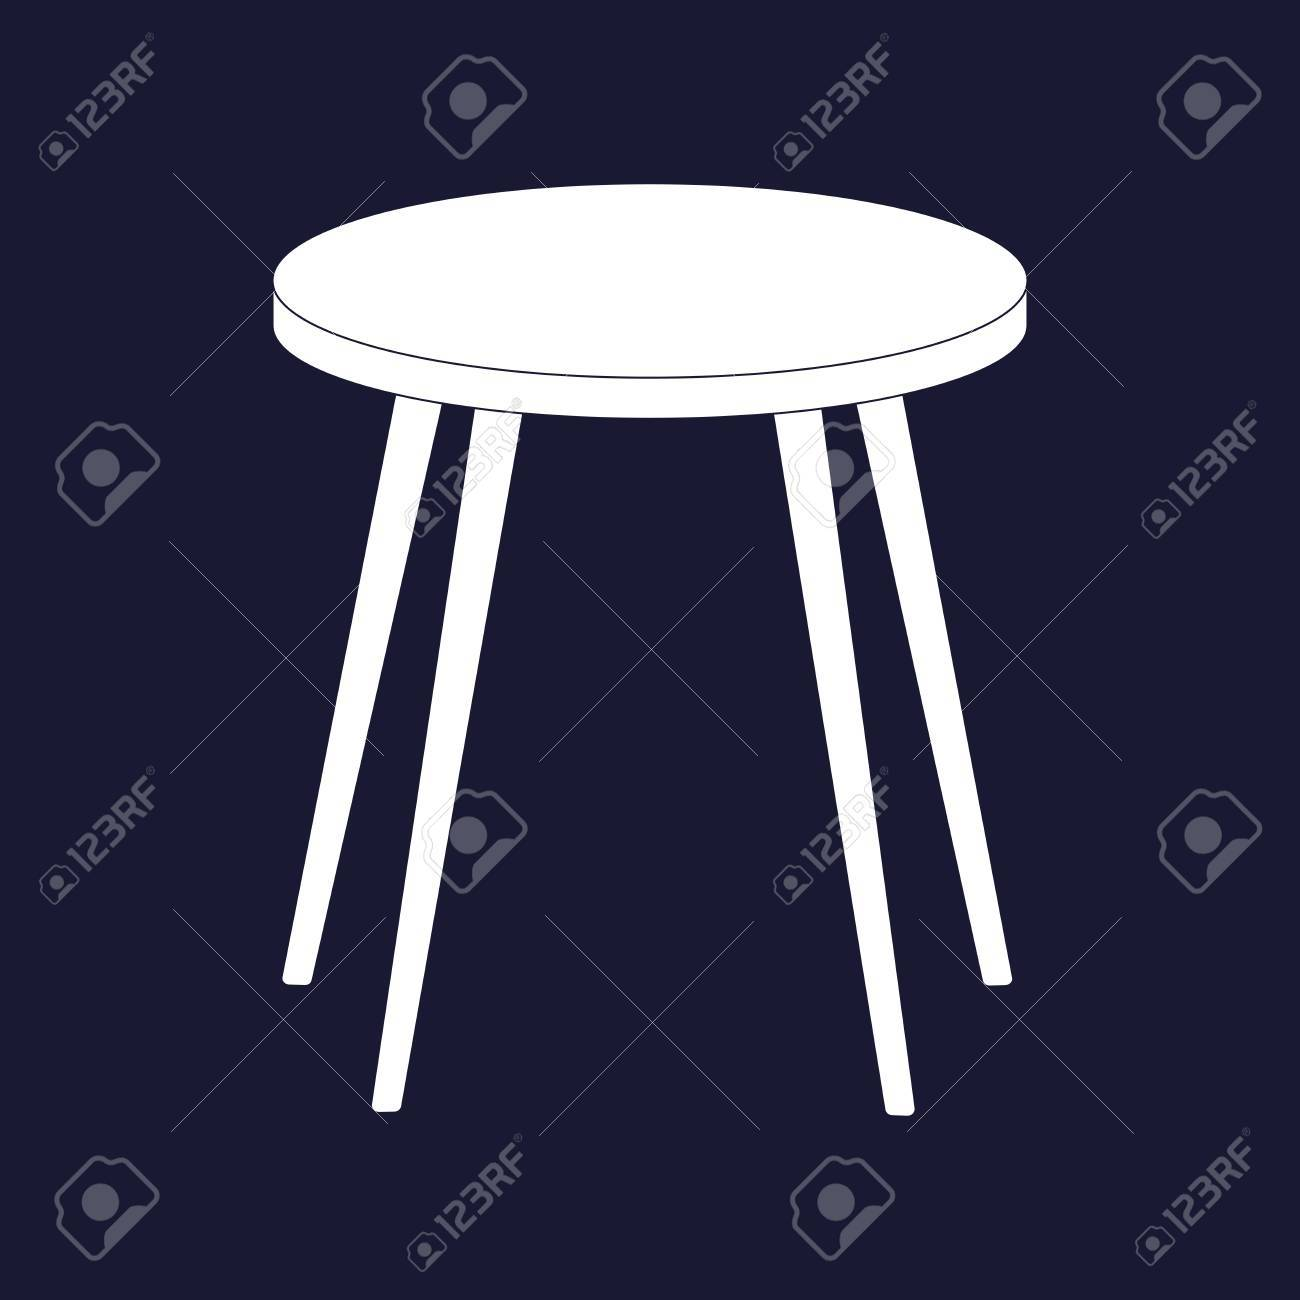 Stool Chair Vector Image Icon Stool Chair Icon Vector White Icon On Dark